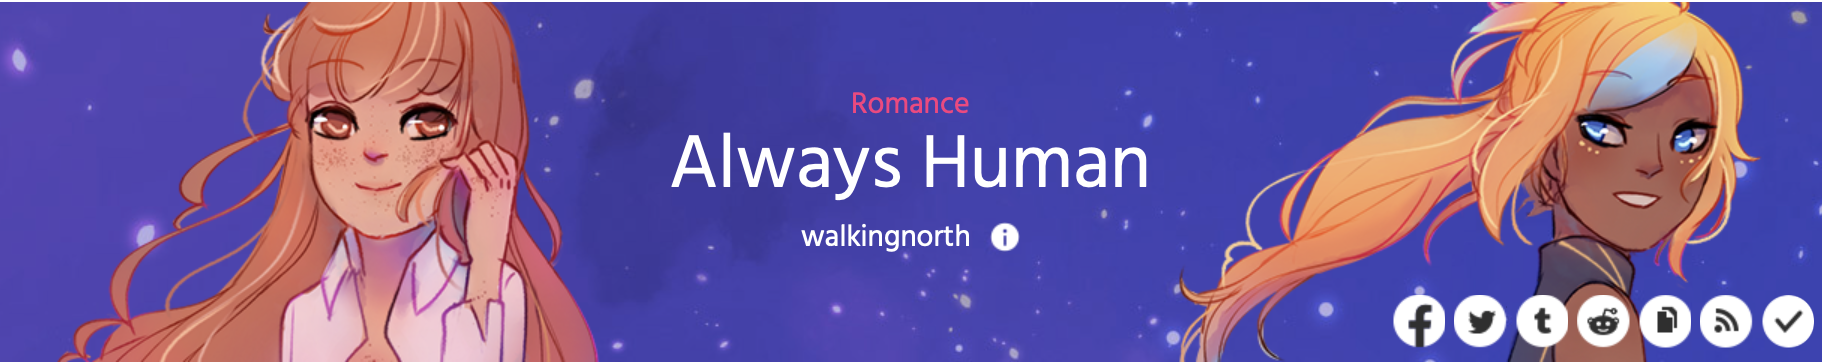 The cover image of Always Human by walkingnorth on Webtoons.